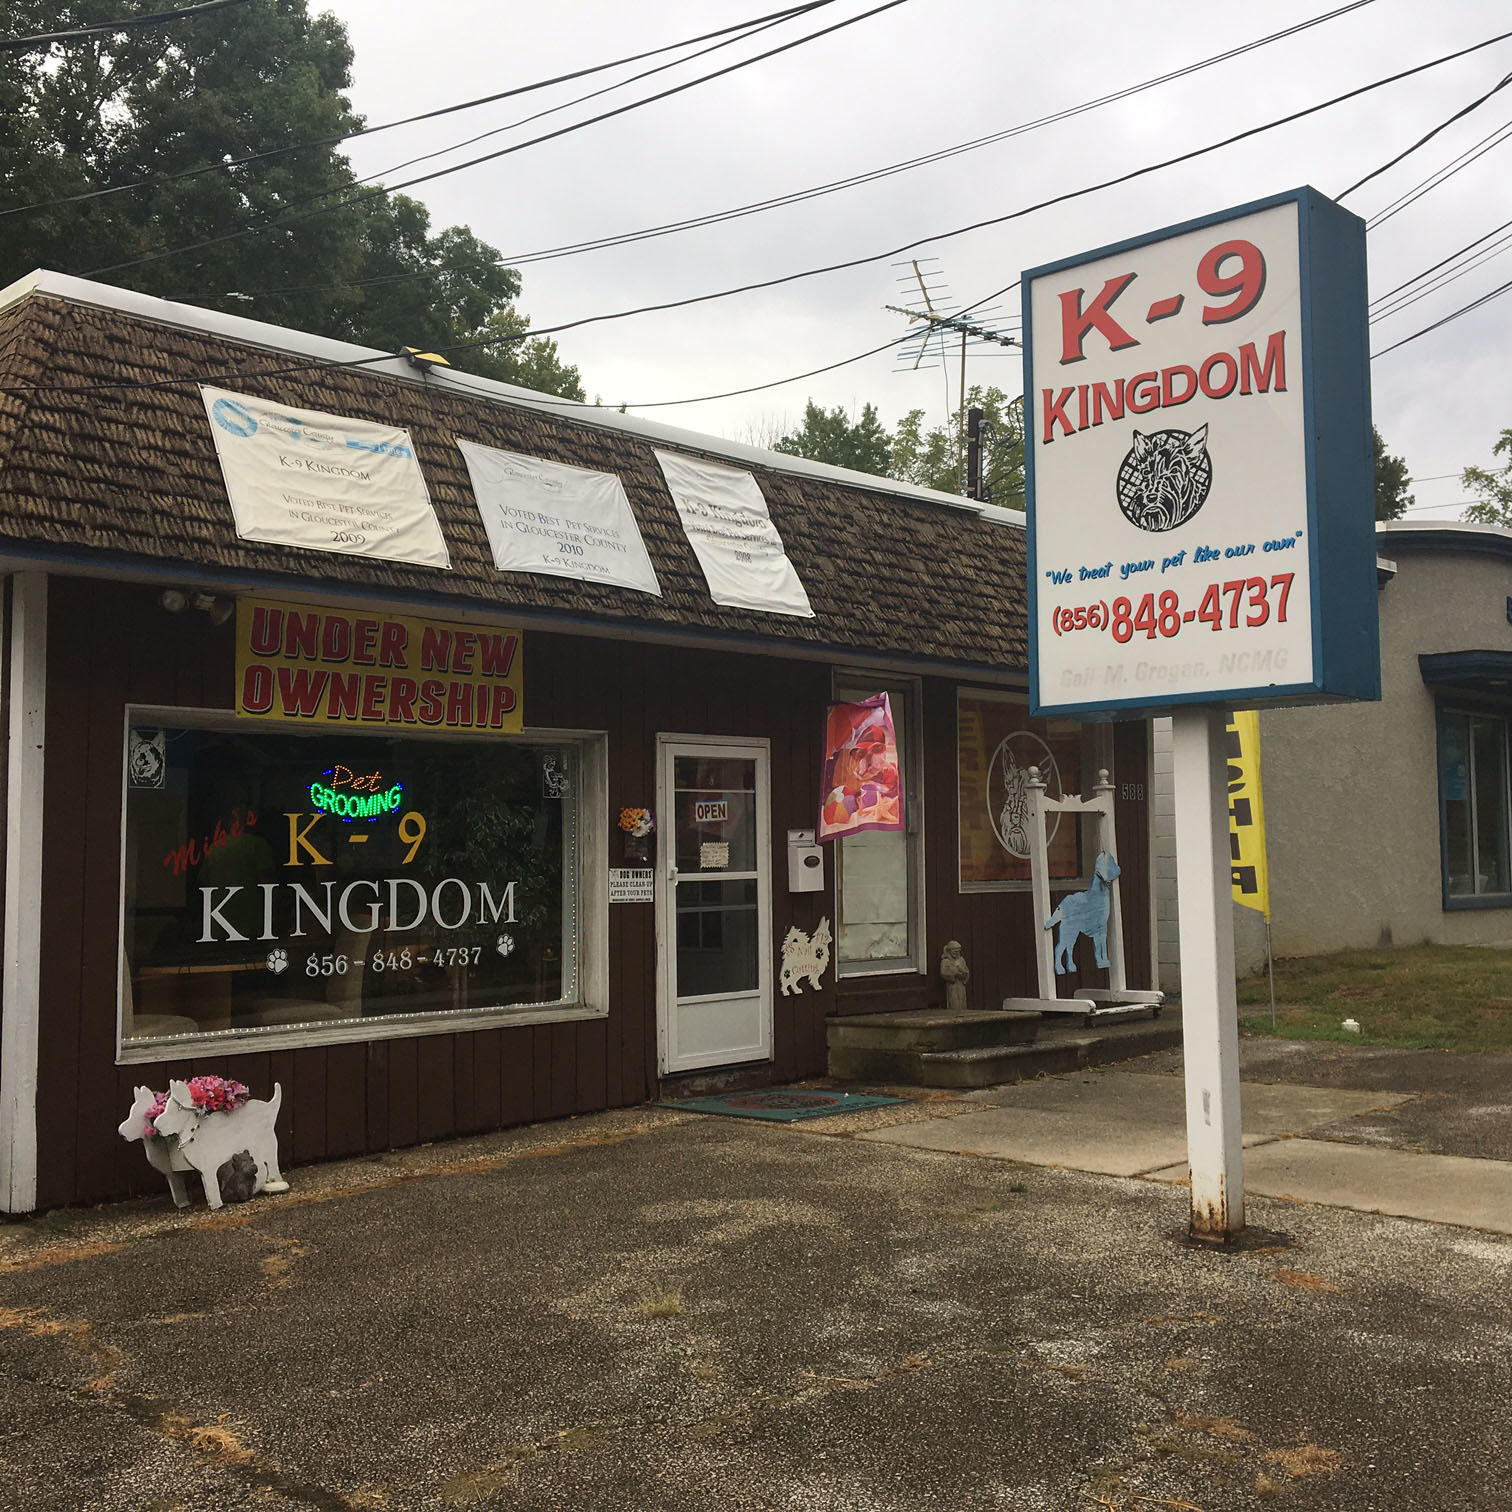 K-9 Kingdom image 3